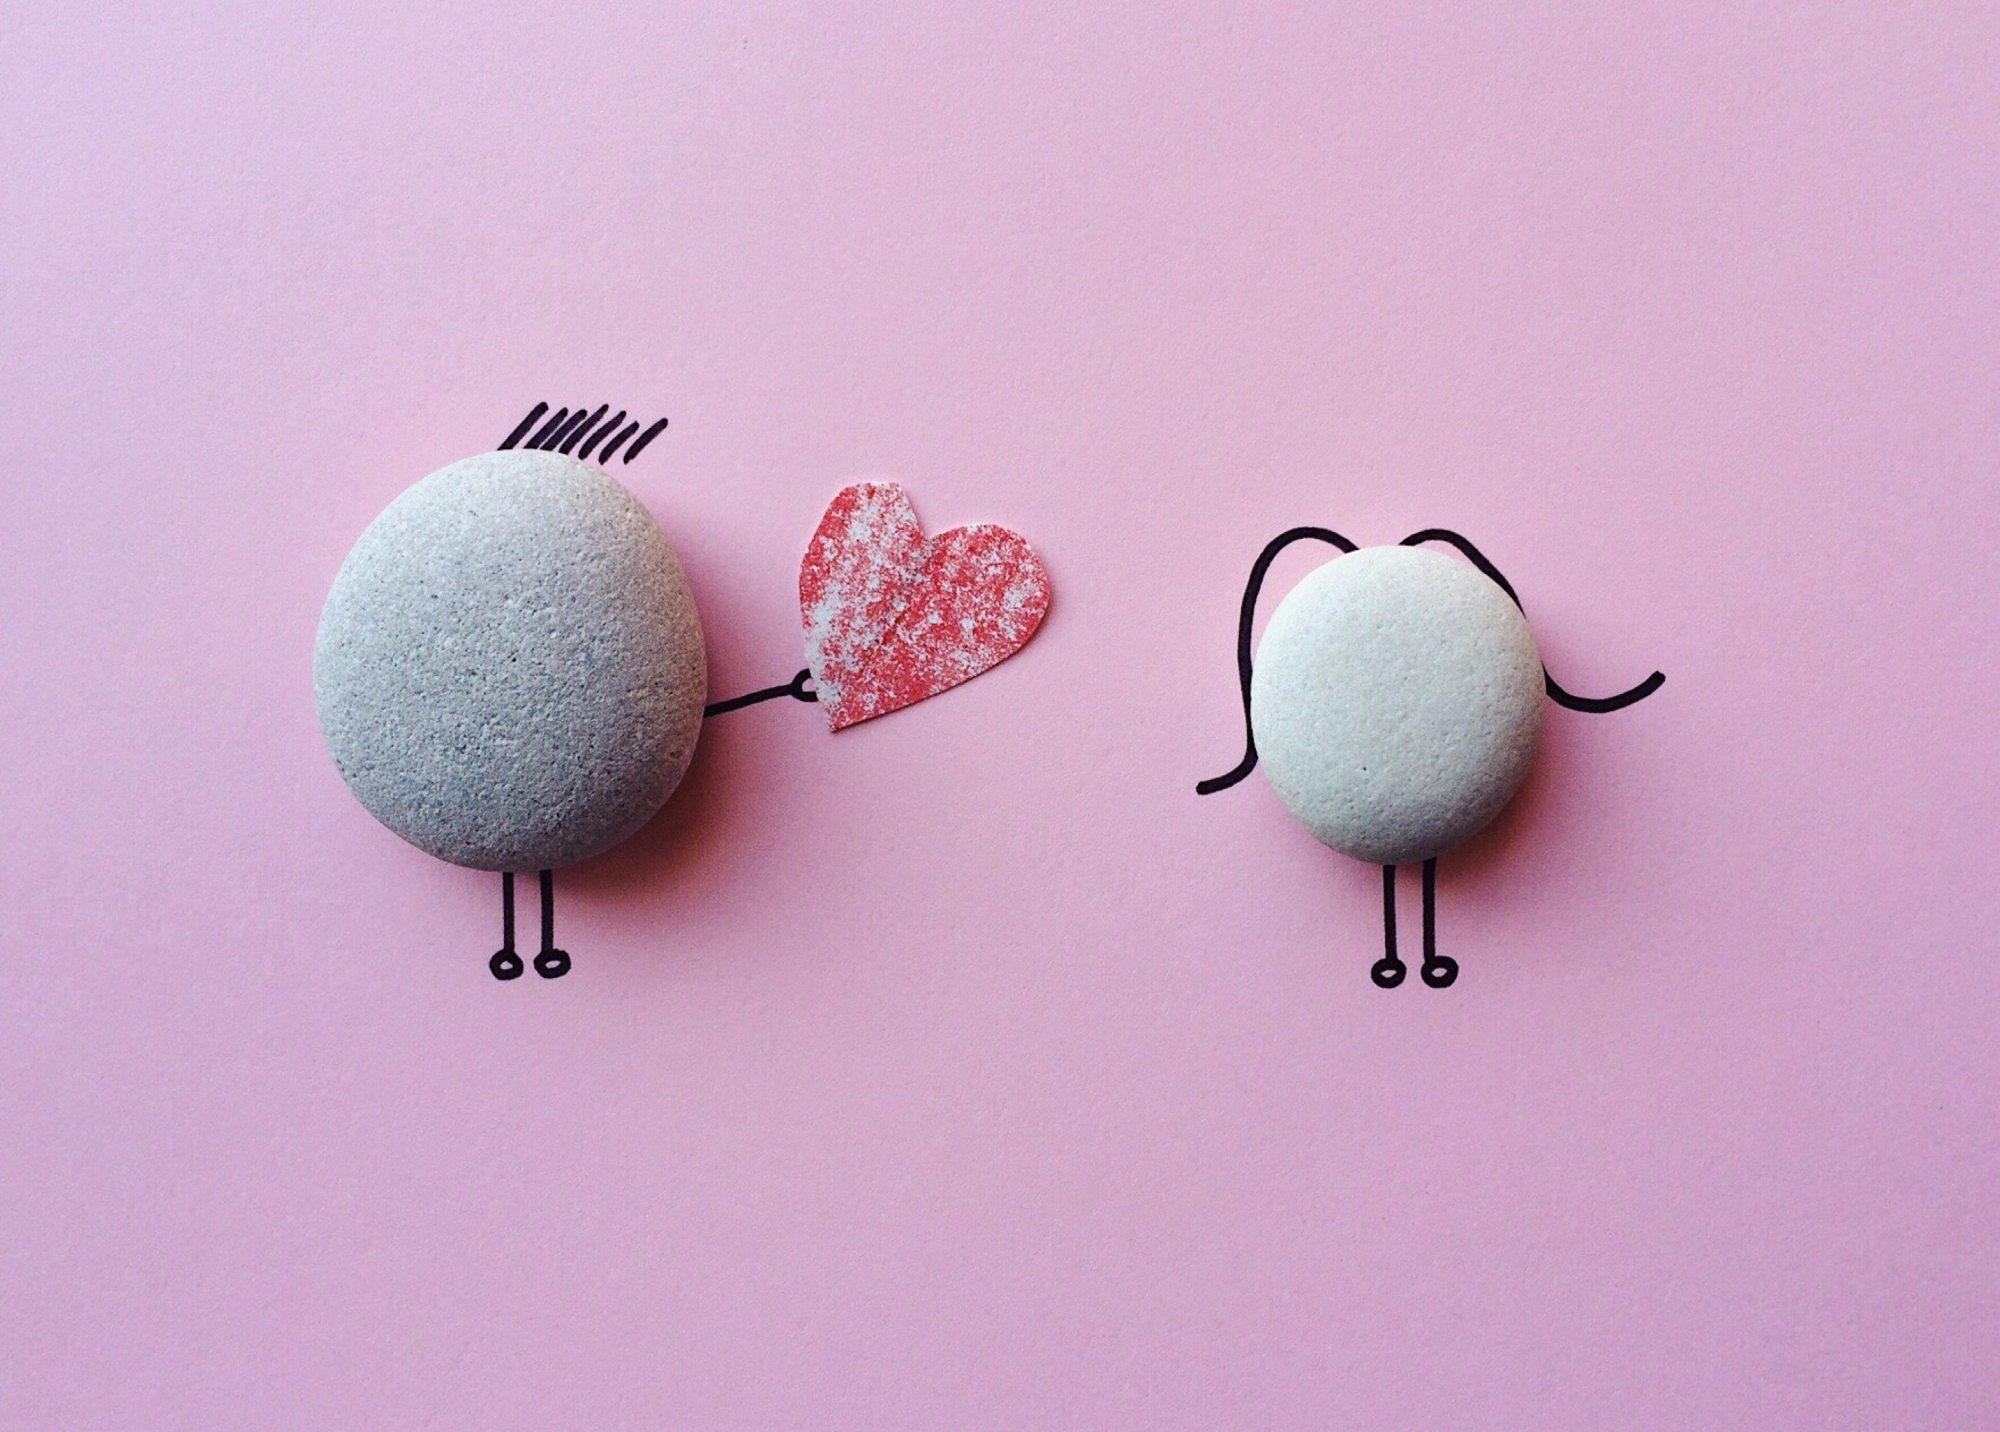 Stick figures made of rocks, one giving a heart to the other